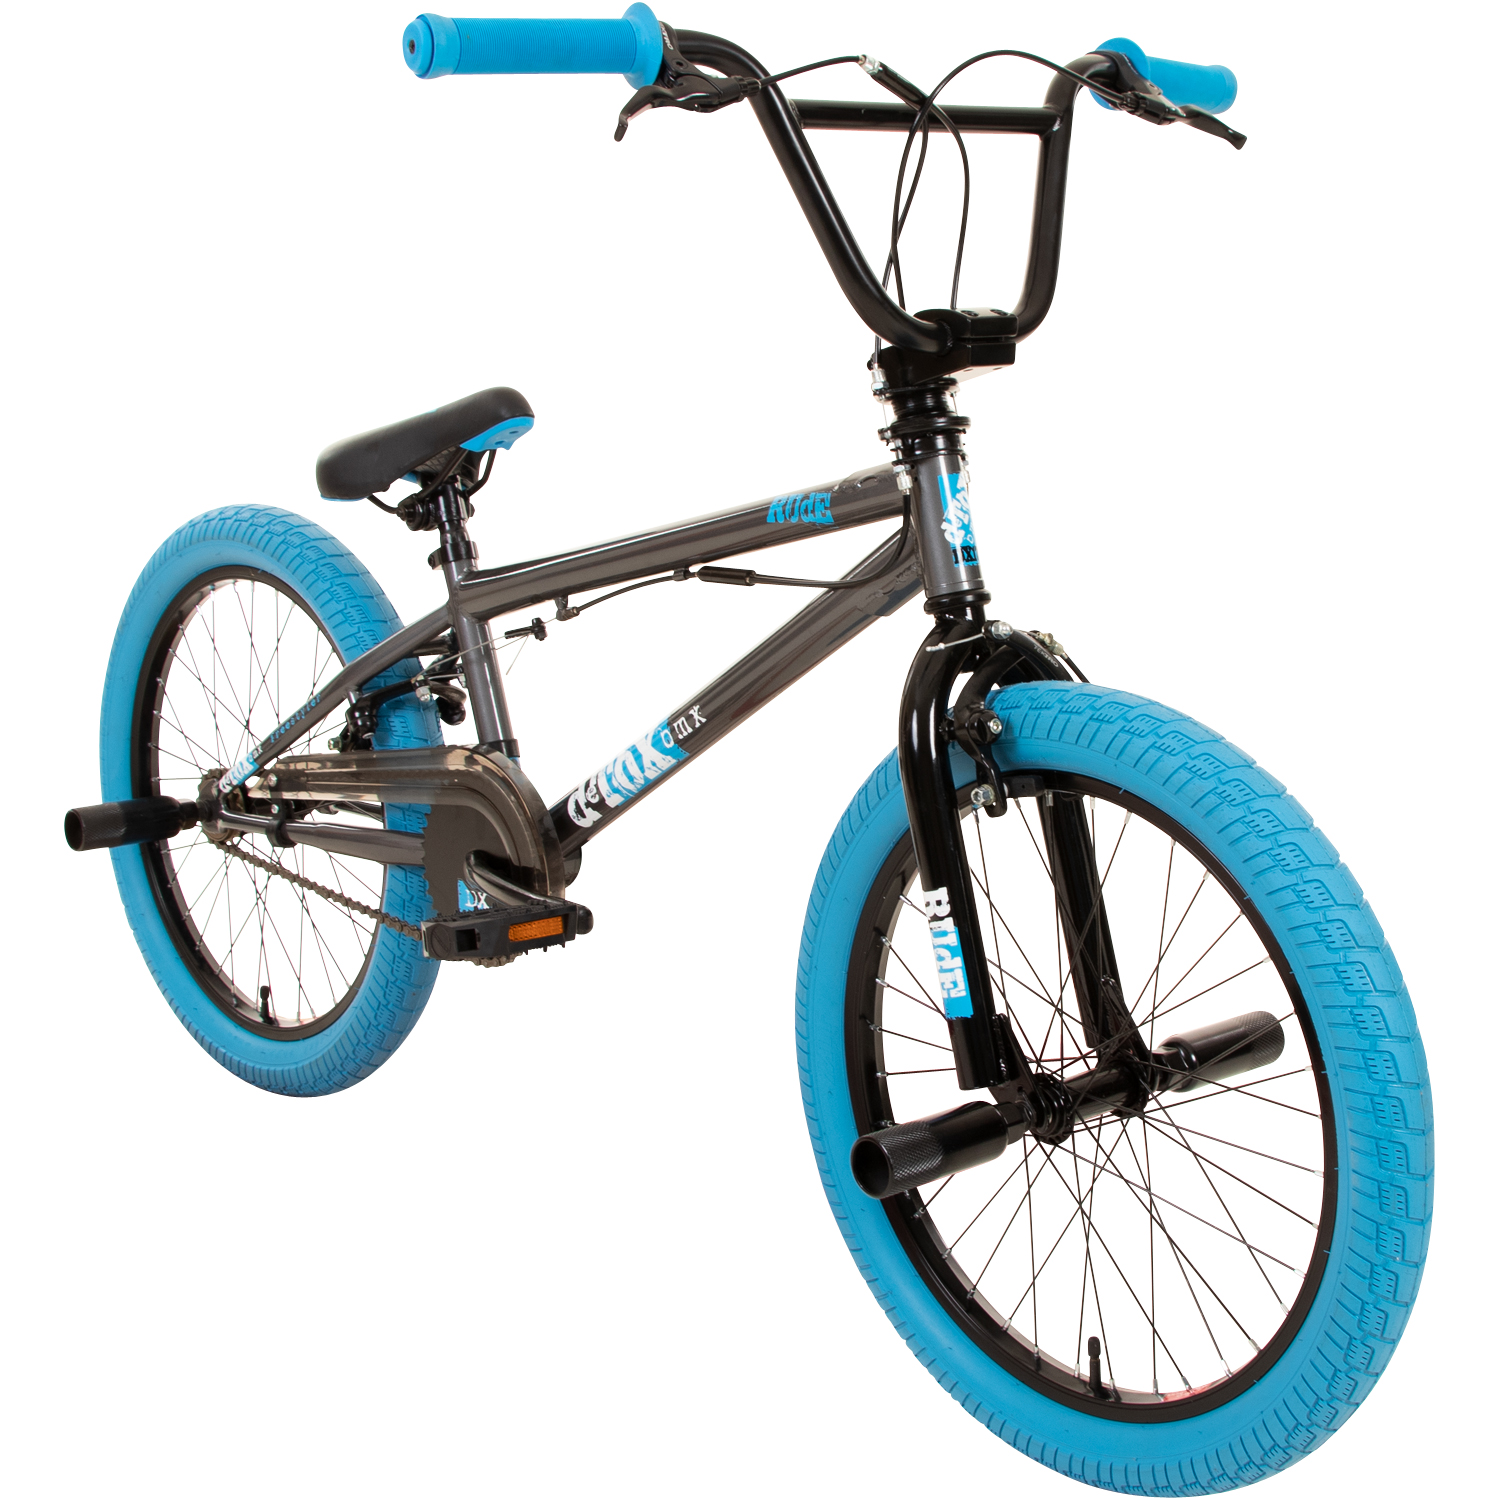 bmx 20 inch bicycle freestyle bike kids bicycle child youth wheel detox 20 ebay. Black Bedroom Furniture Sets. Home Design Ideas